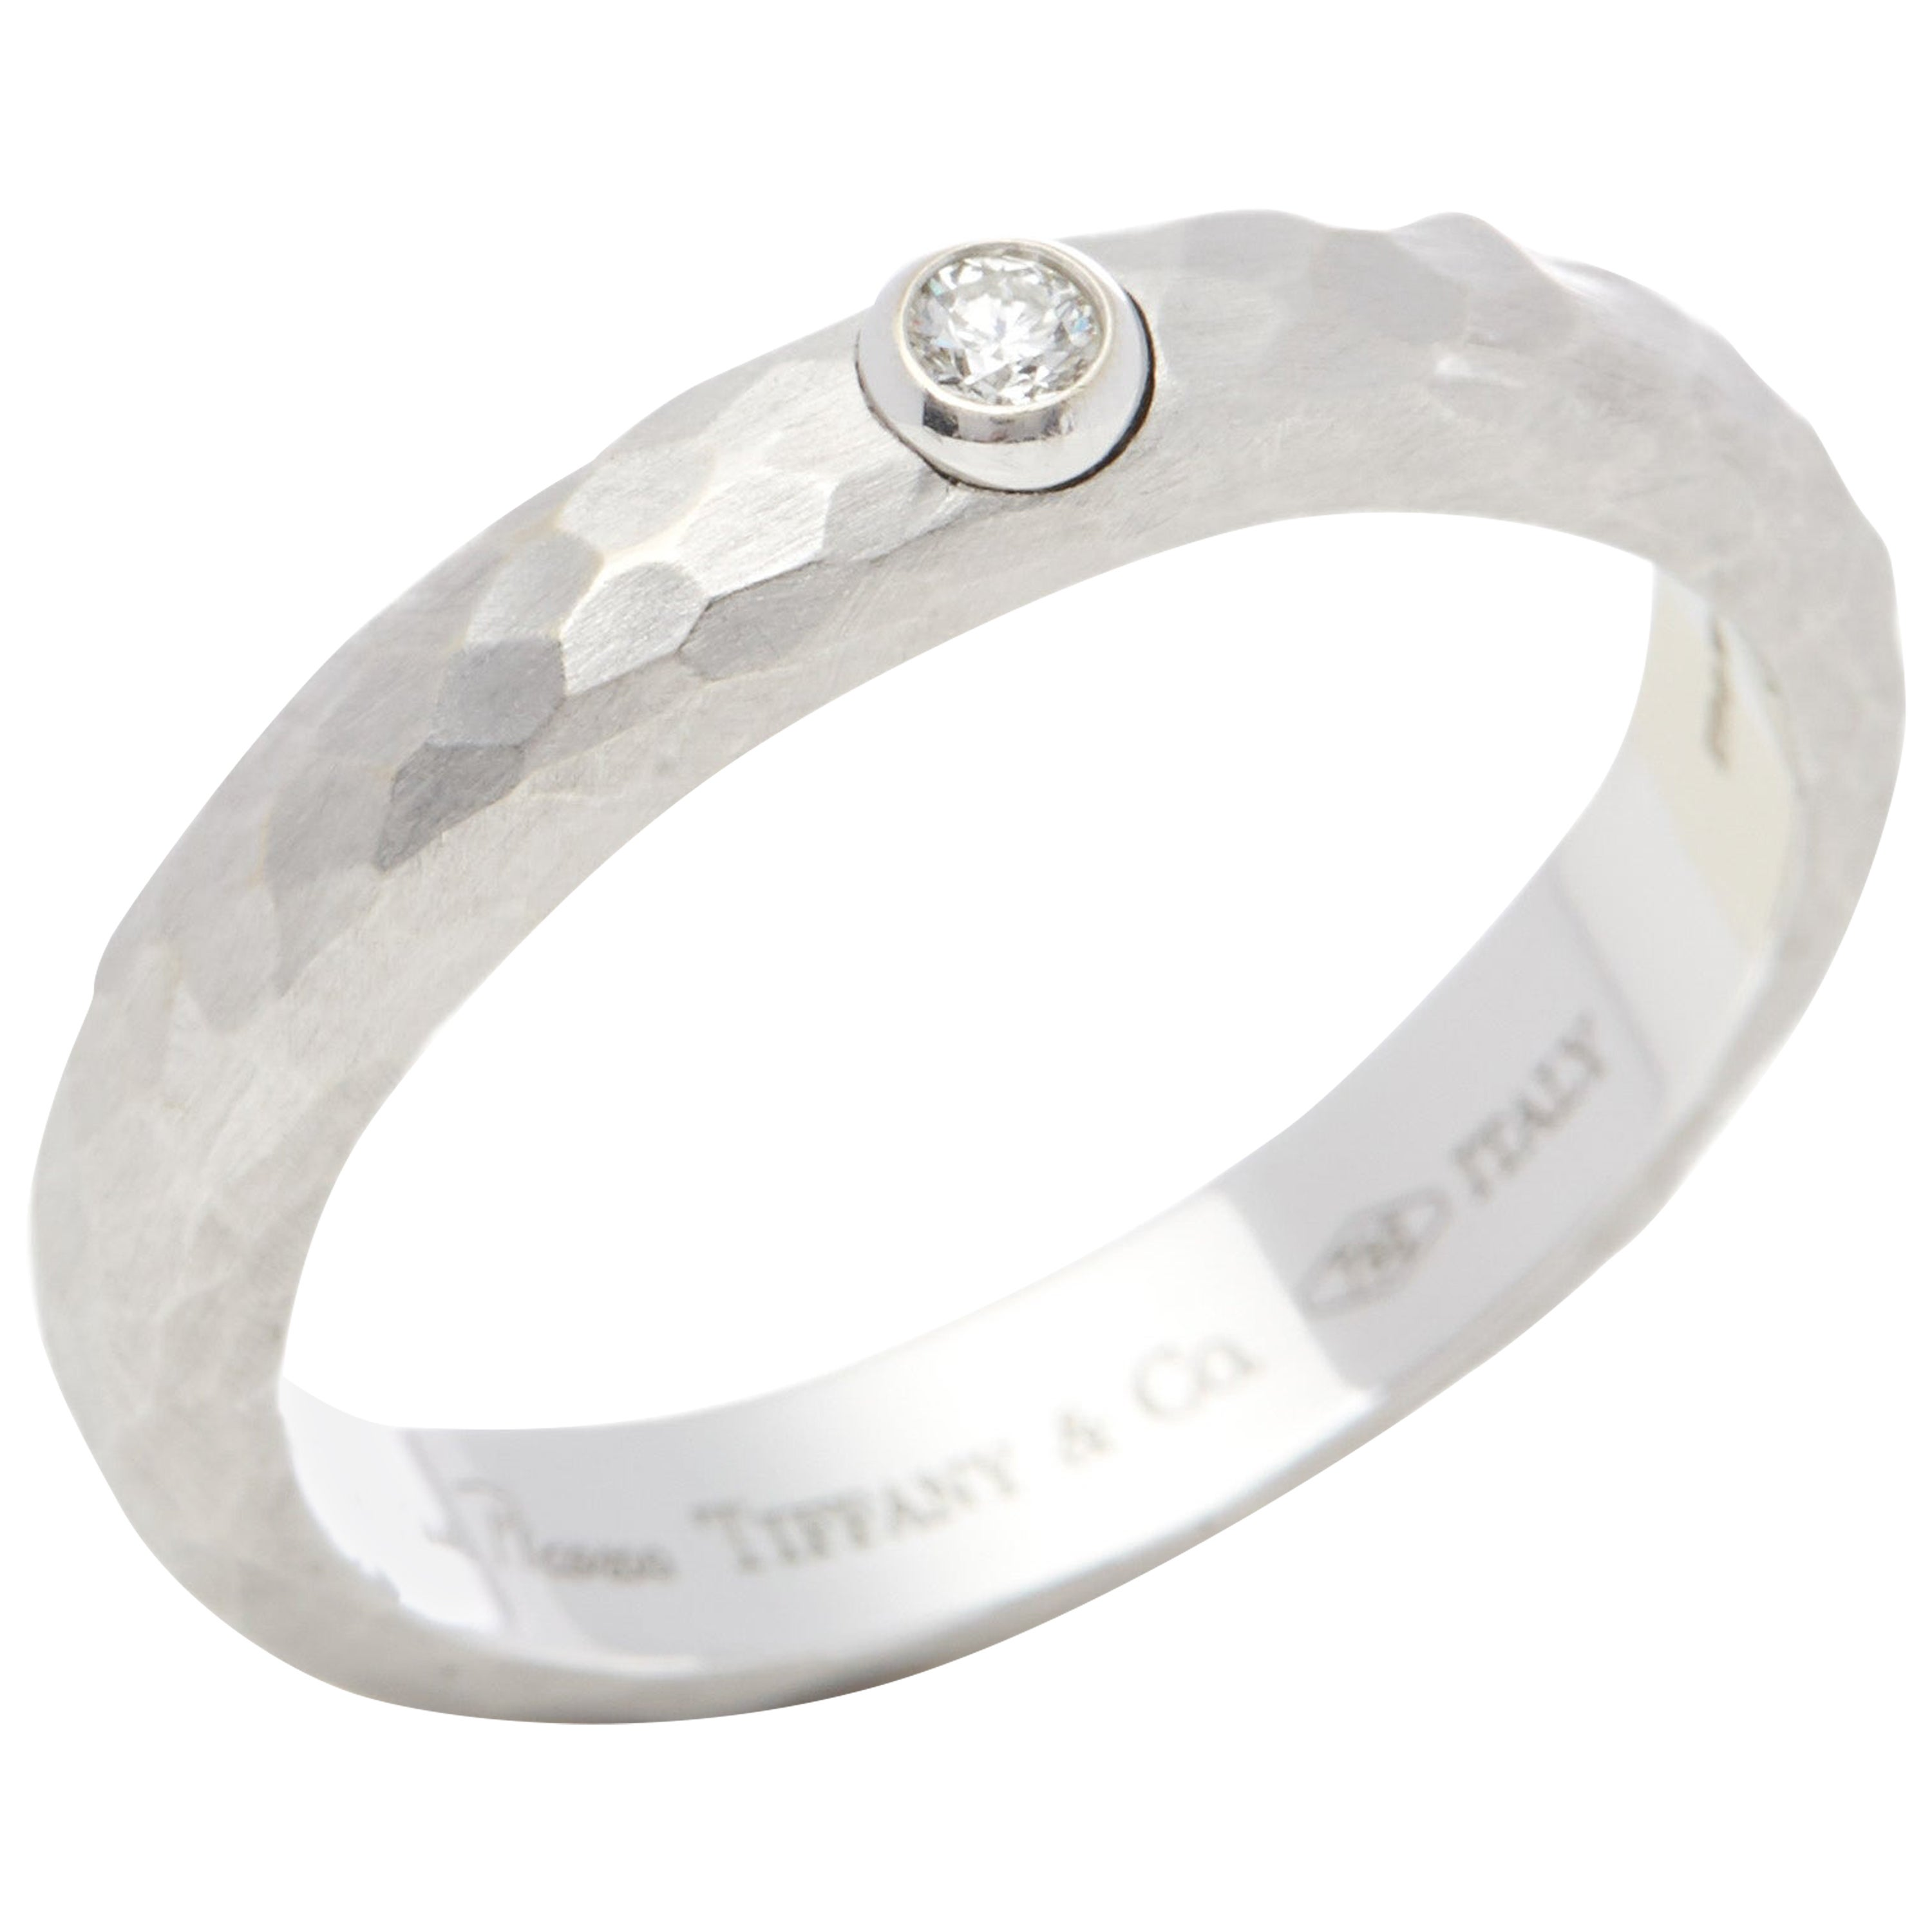 Tiffany &Co 18k White Gold Paloma Picasso Hammered Finish Solitaire Diamond Ring